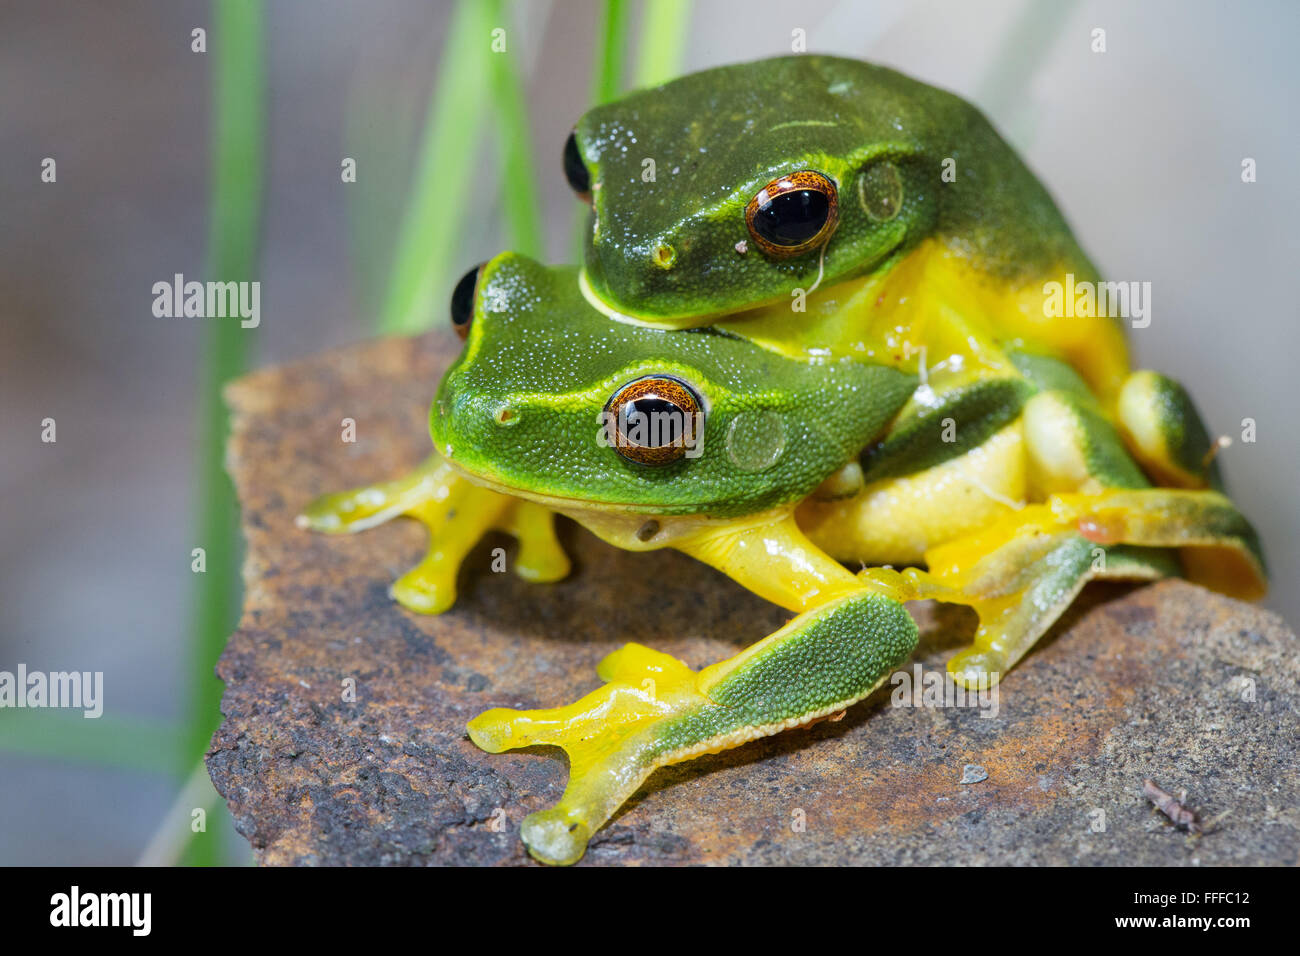 Dainty Green Tree Frog (Litoria gracilenta). also known as Graceful Tree Frog, in amplexus, NSW, Australia - Stock Image